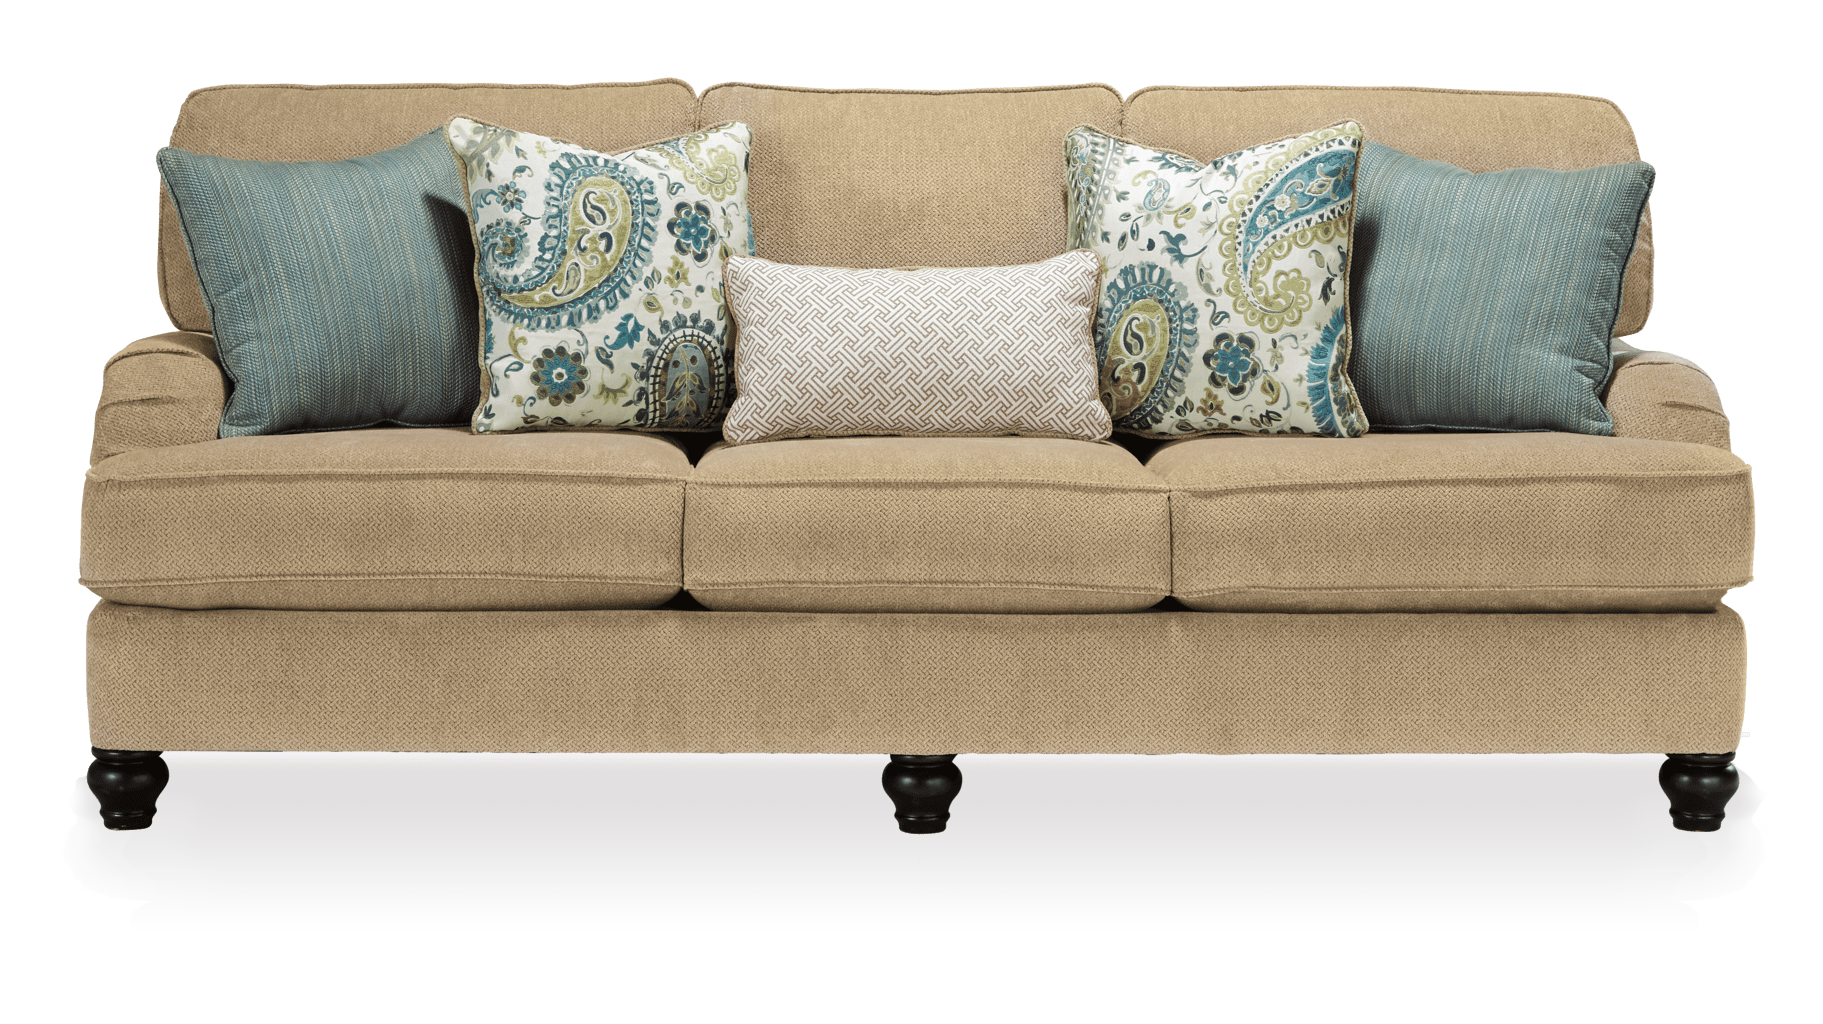 sofa warehouse manchester hide a bed seating benches for living room livingroom indian style